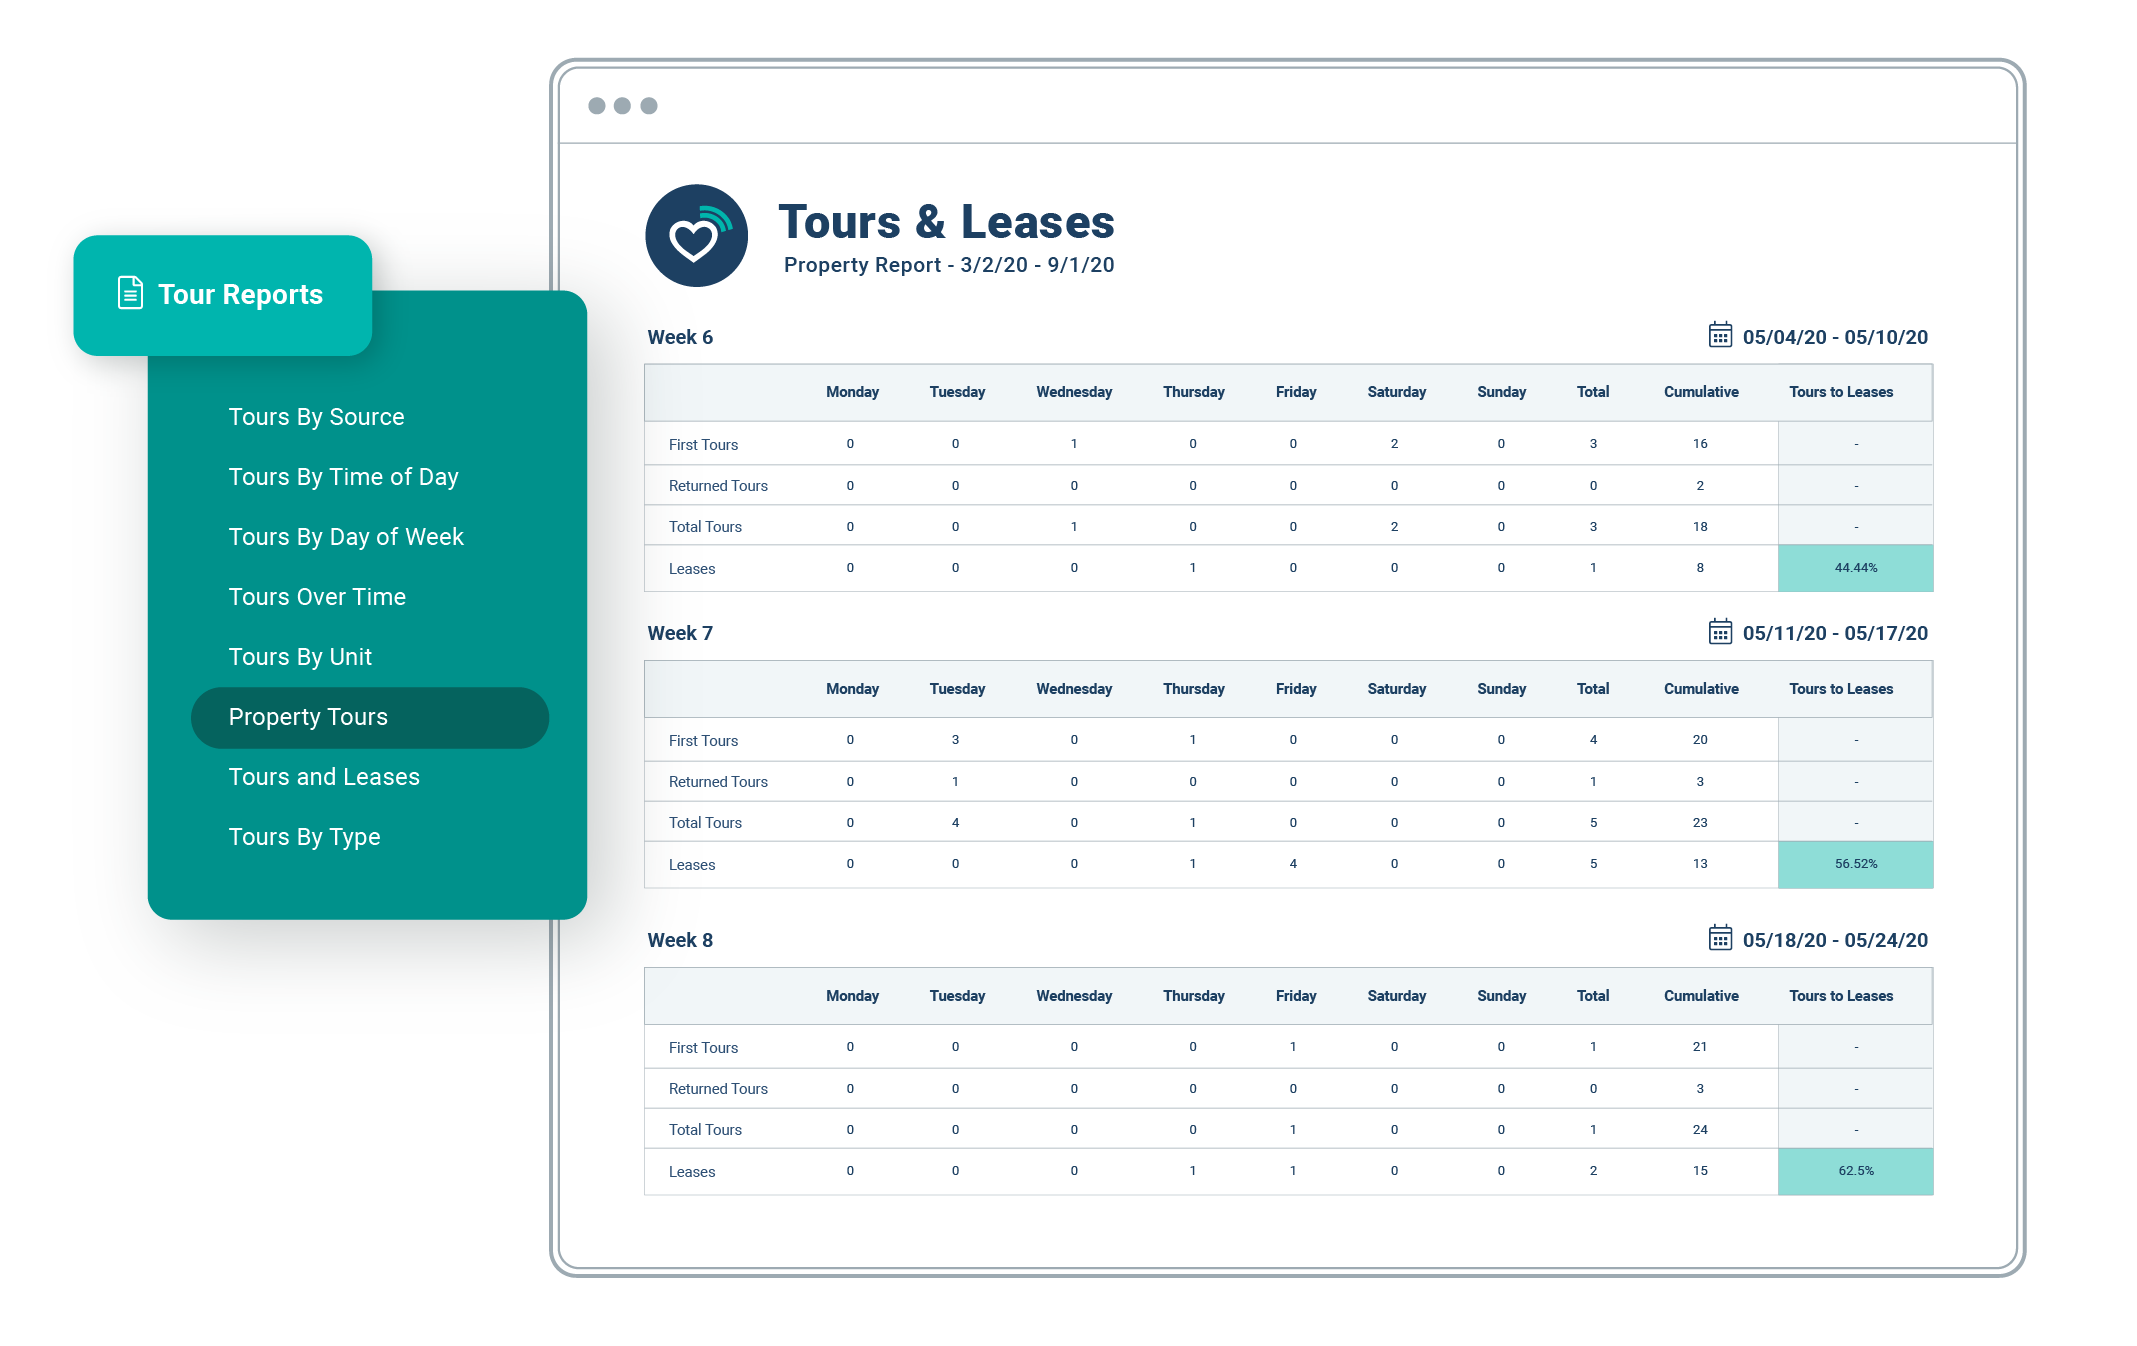 Tours and Leases Report